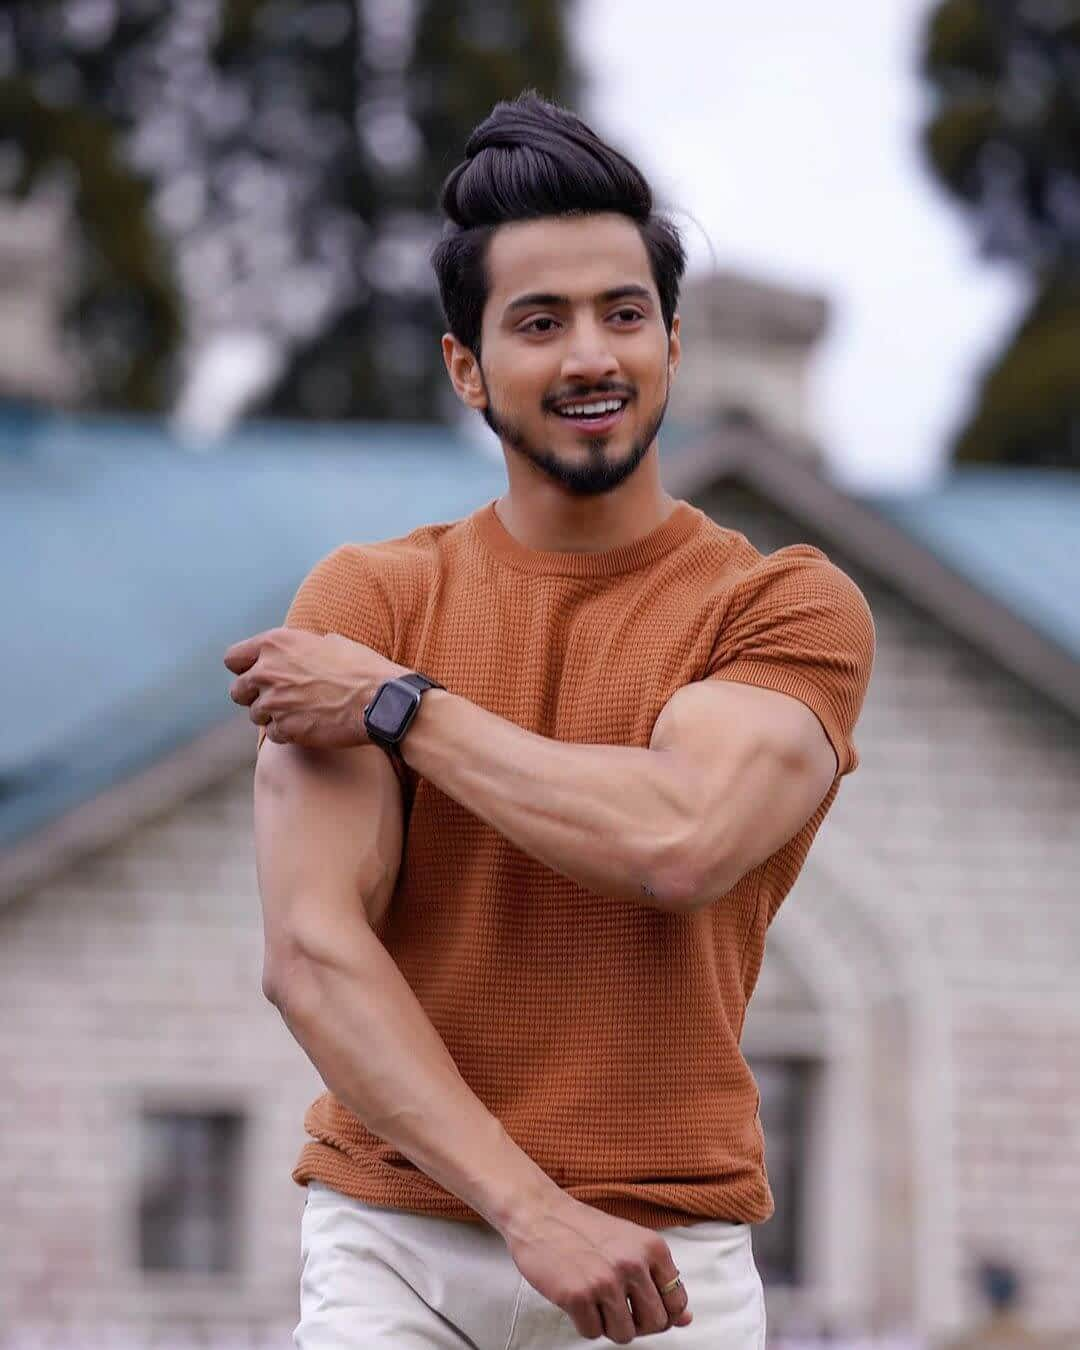 Mr Faisu (Faisal Shaikh) Age, Height, Wiki, Instagram, Net Worth